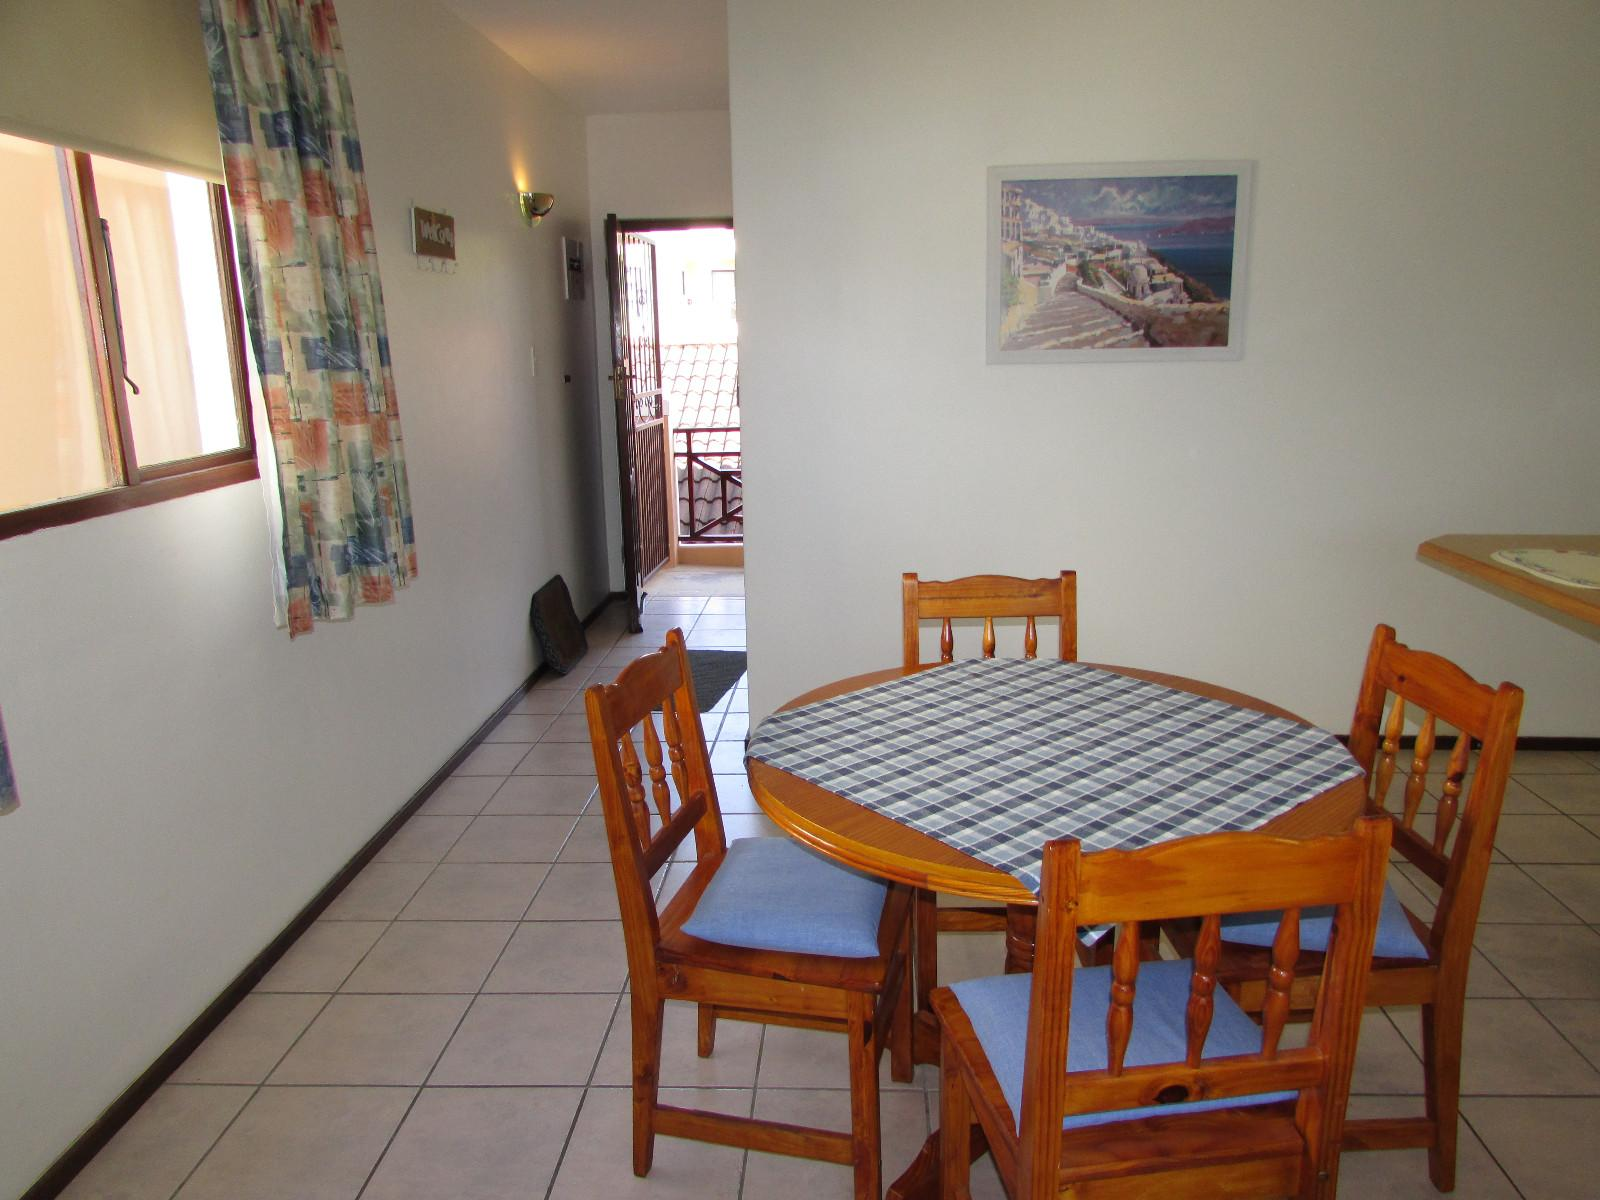 Shelly Beach property for sale. Ref No: 13243098. Picture no 3